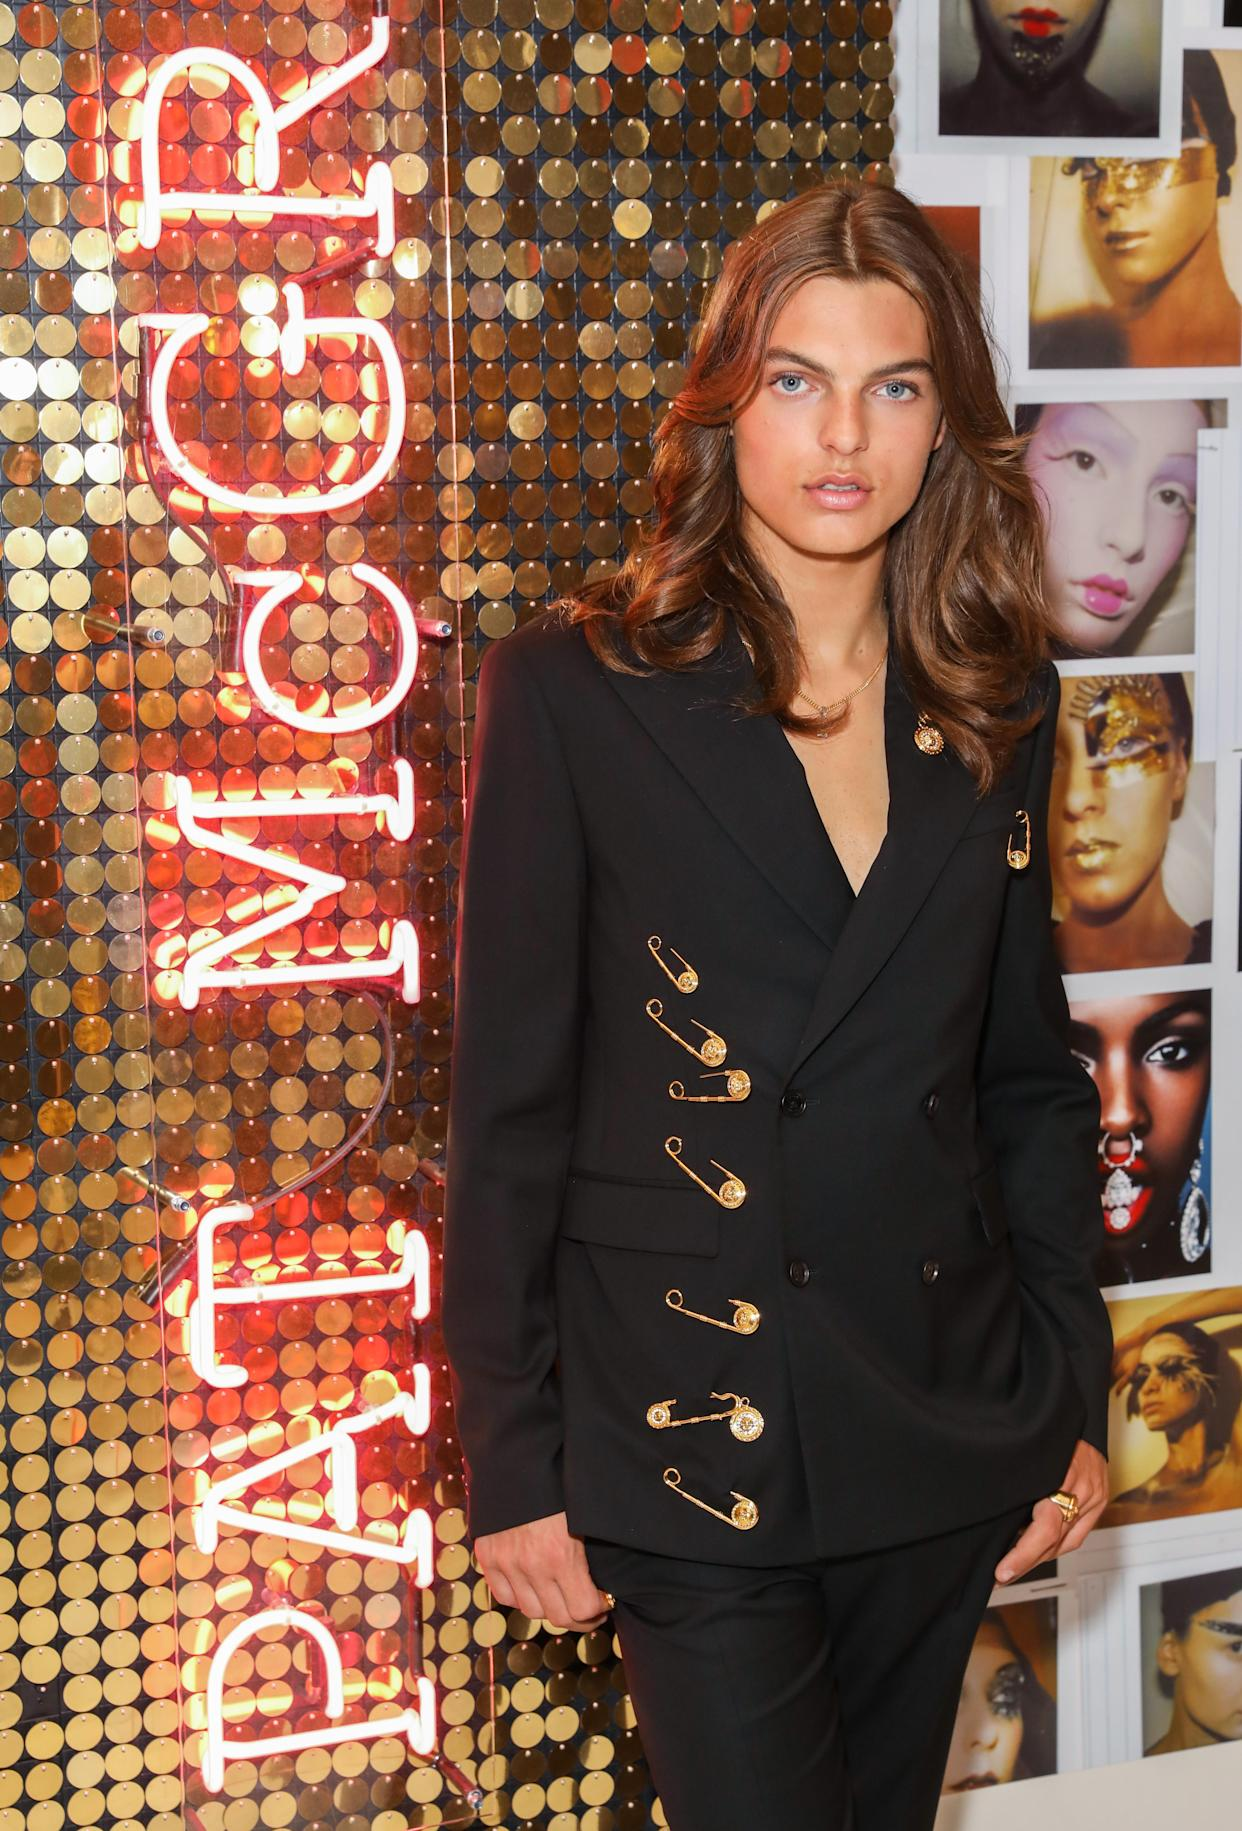 LONDON, ENGLAND - JULY 25:  Pat McGrath muse Damian Hurley launches the Pat McGrath Labs new product range, 'Sublime Perfection: The System' at Selfridges on July 25, 2019 in London, England. (Photo by Darren Gerrish/Getty Images)